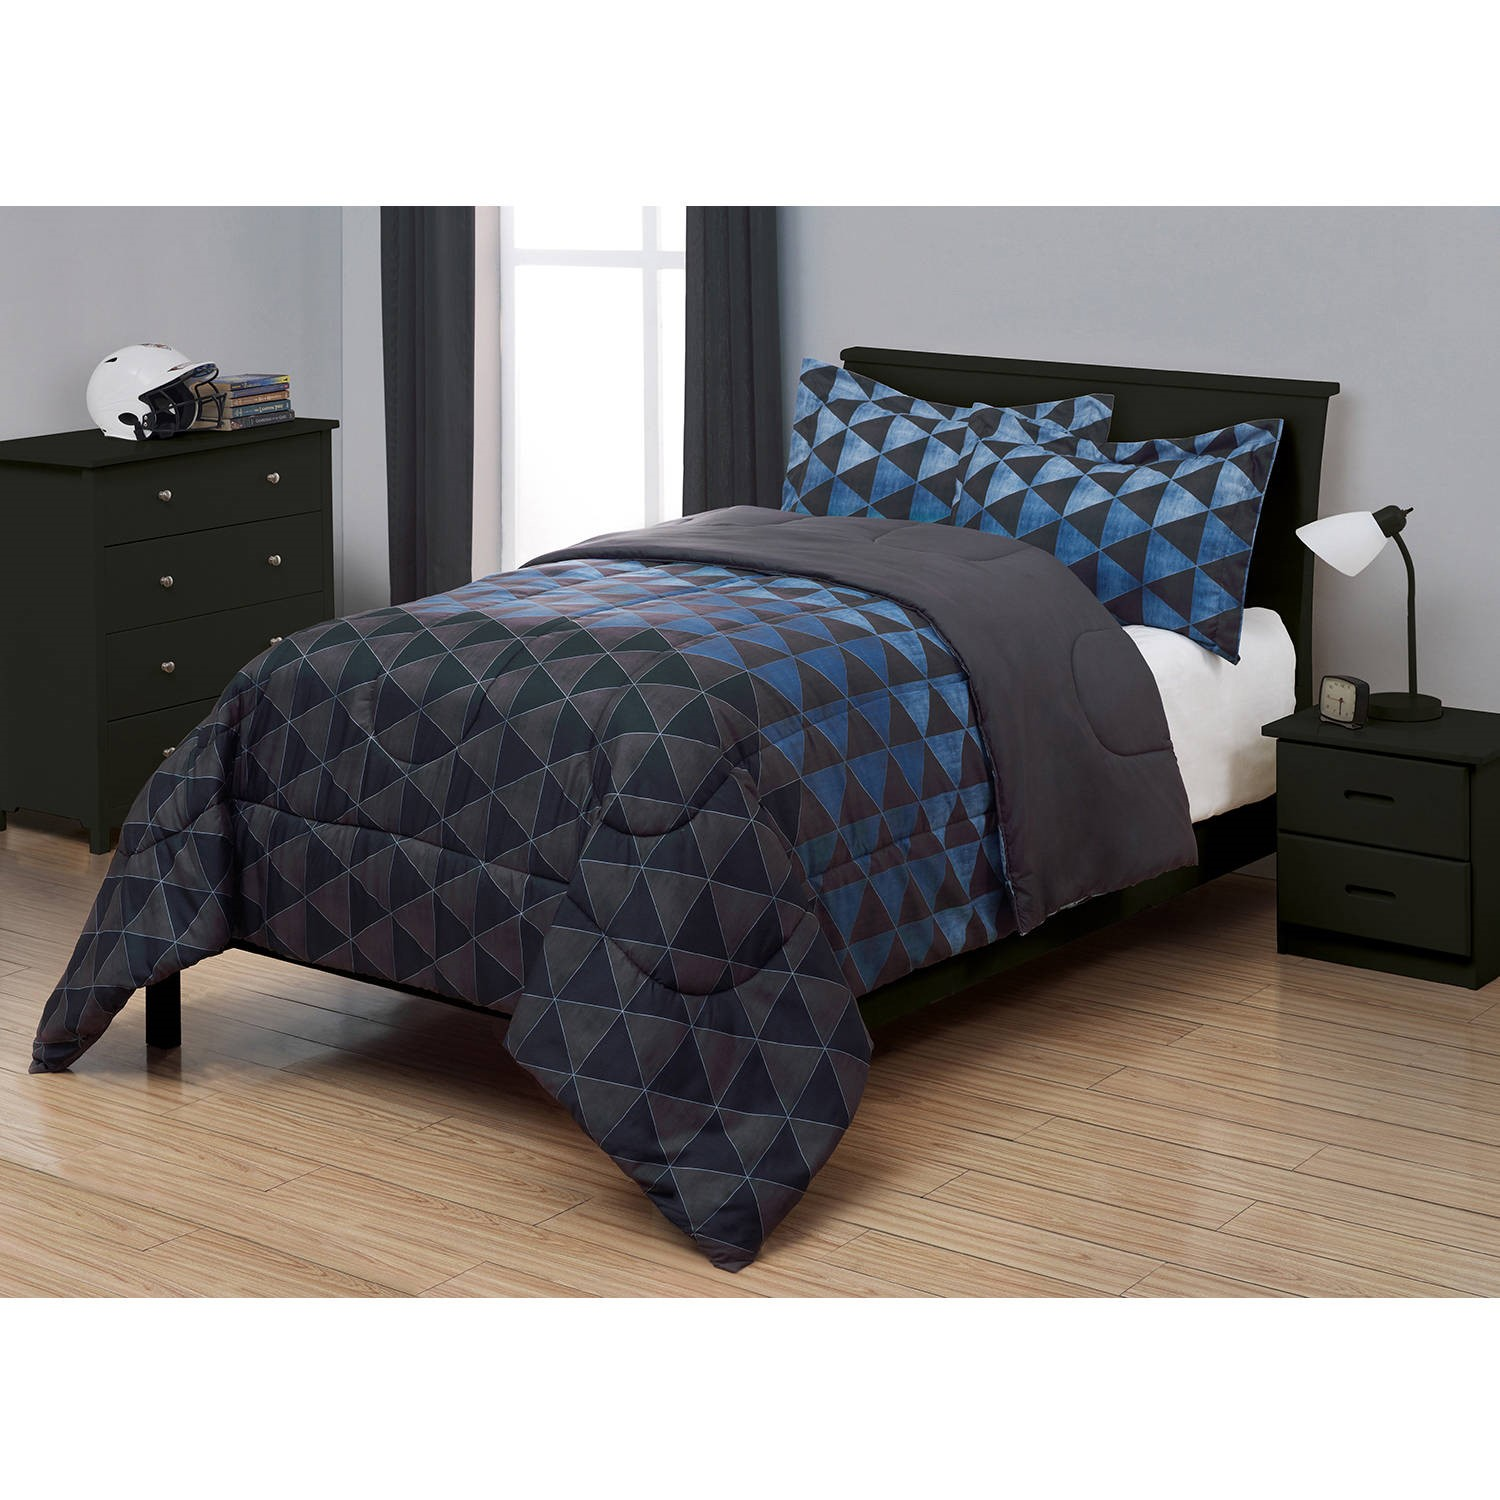 Mainstays Kids Next Generation Bedding Comforter Set